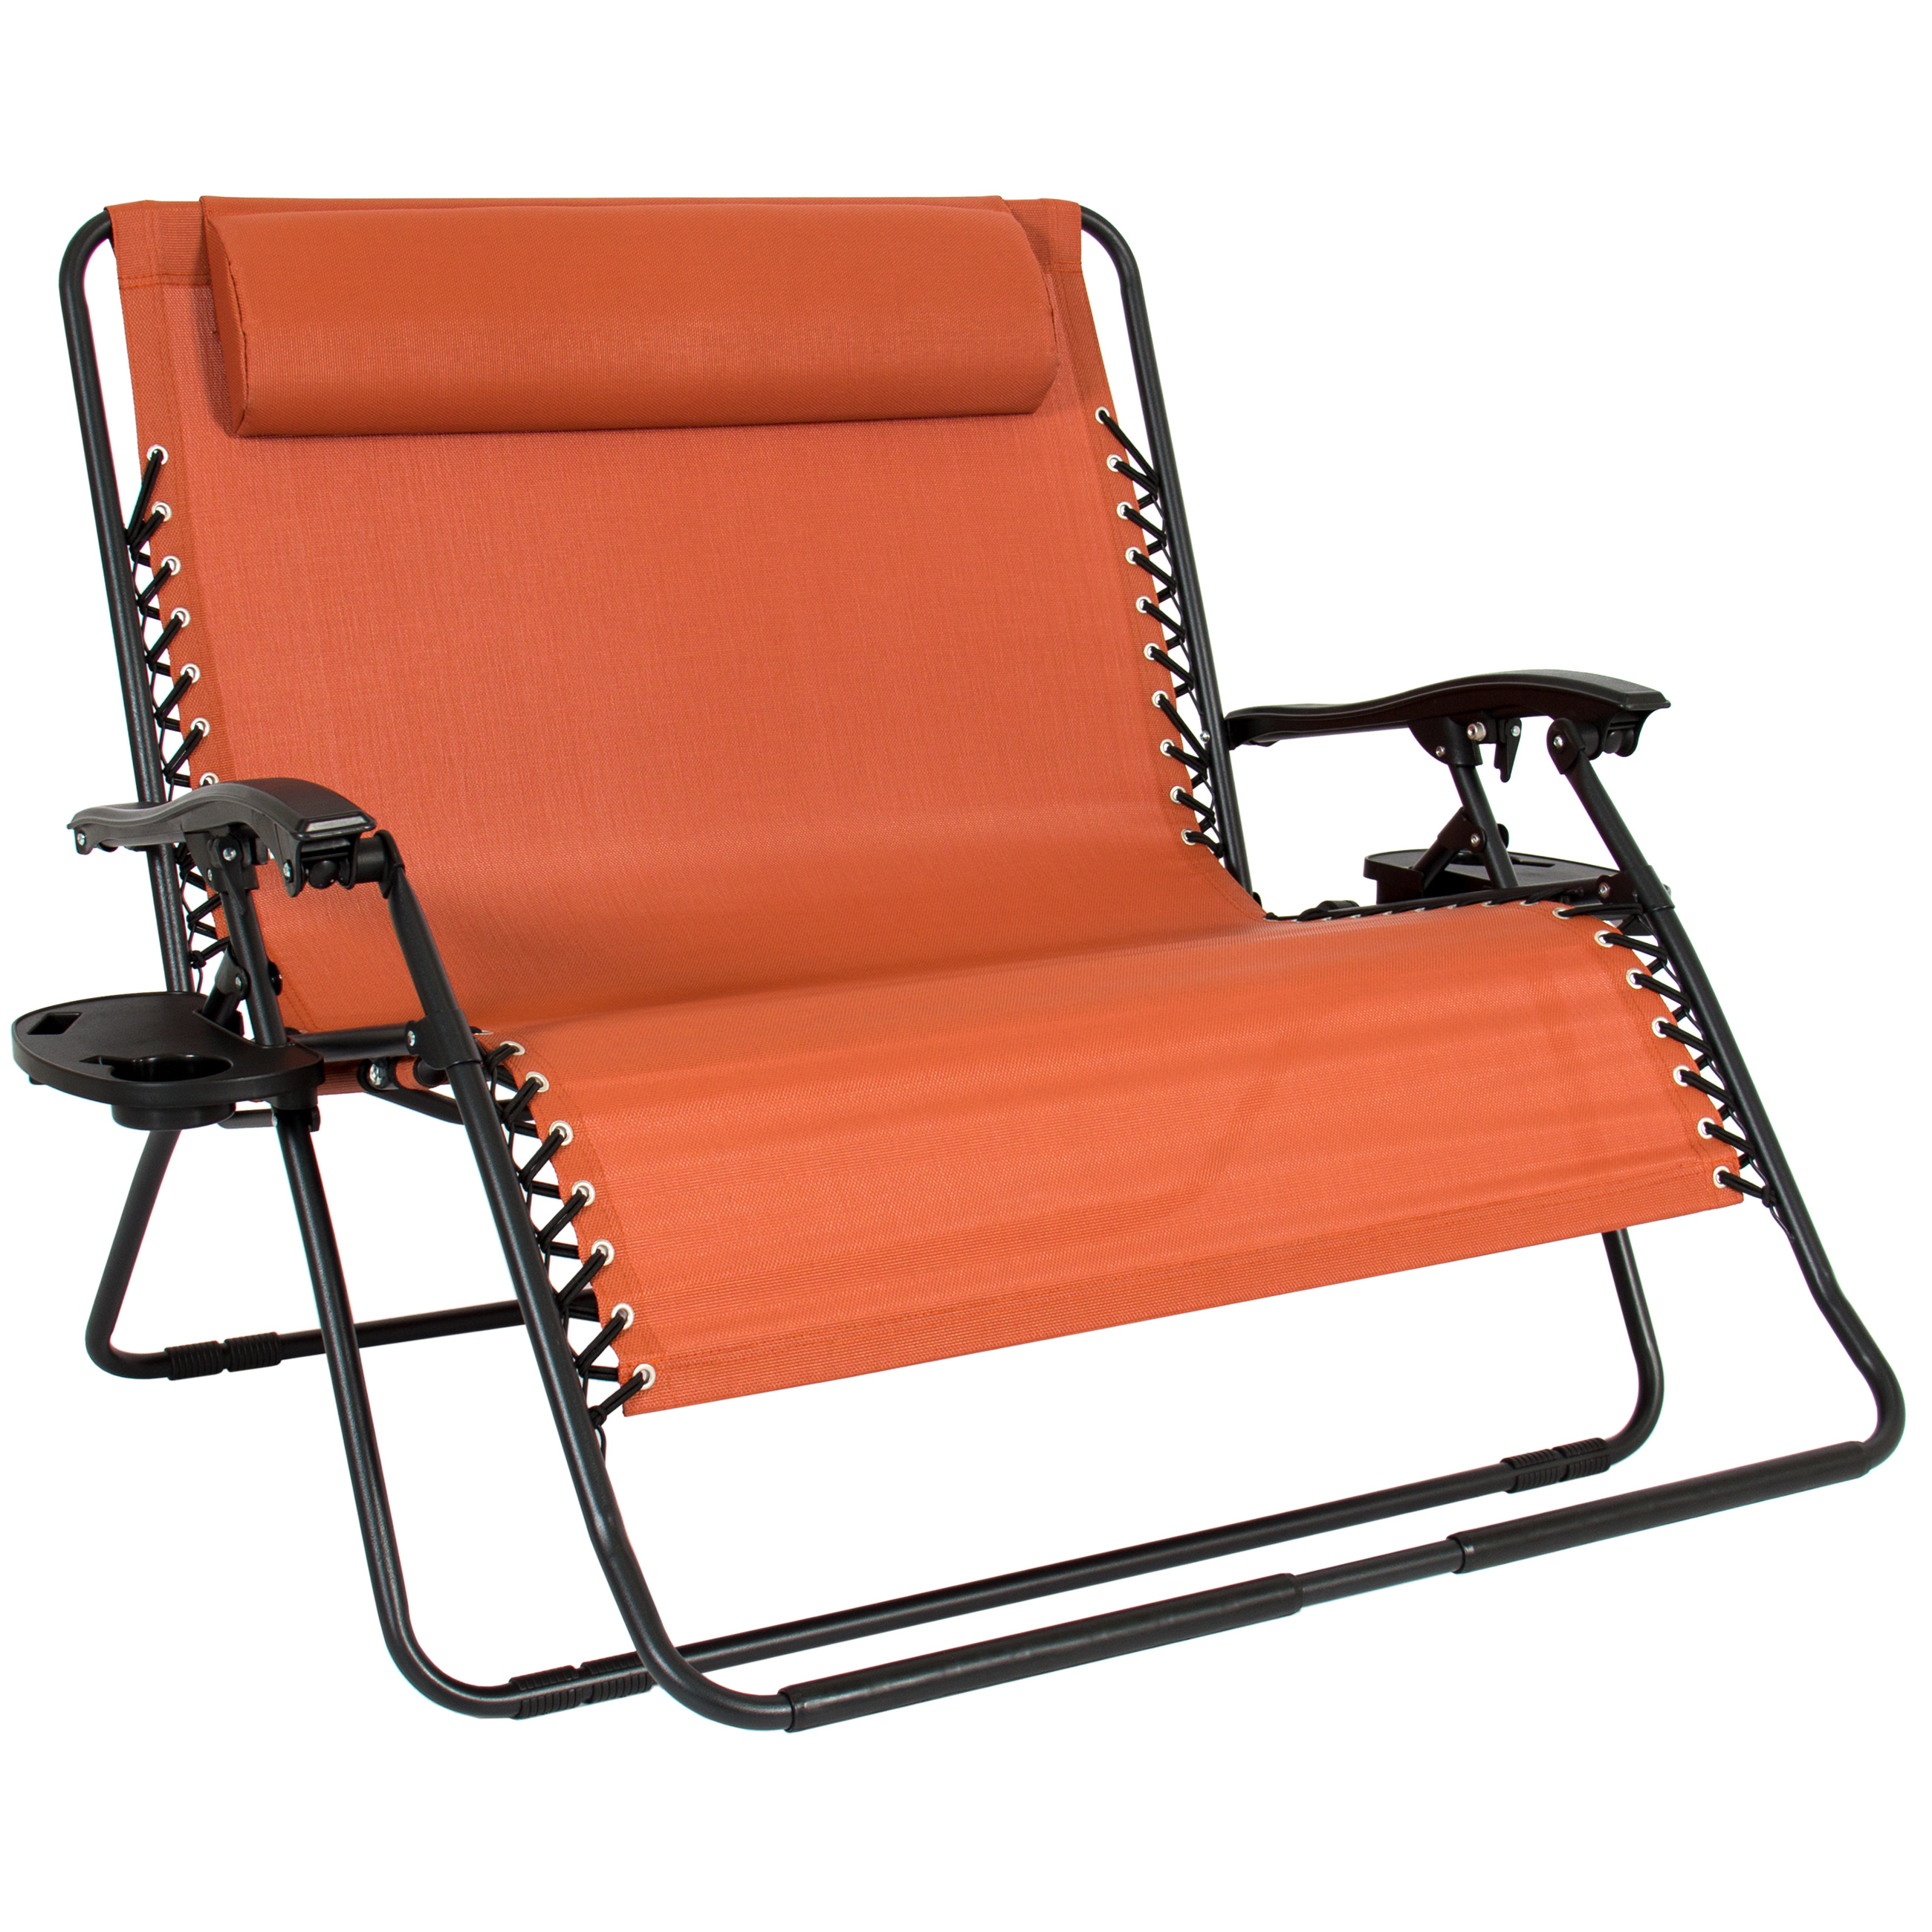 Bcp 2 Person Double Wide Zero Gravity Chair W Cup Holders